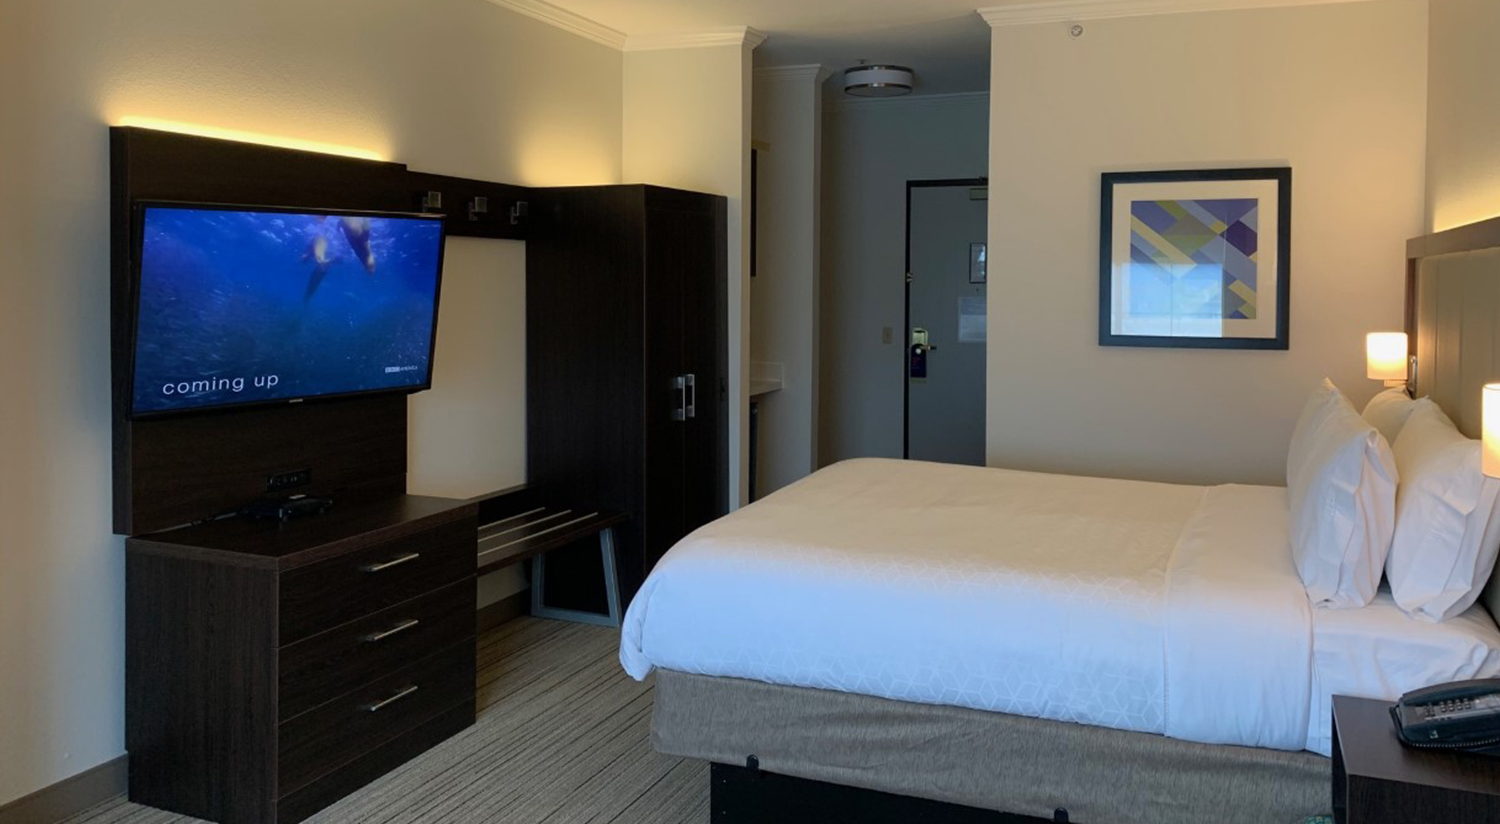 ENJOY THE COMFORTS OF HOME WHILE TRAVELING FOR BUSINESS OR PLEASURE